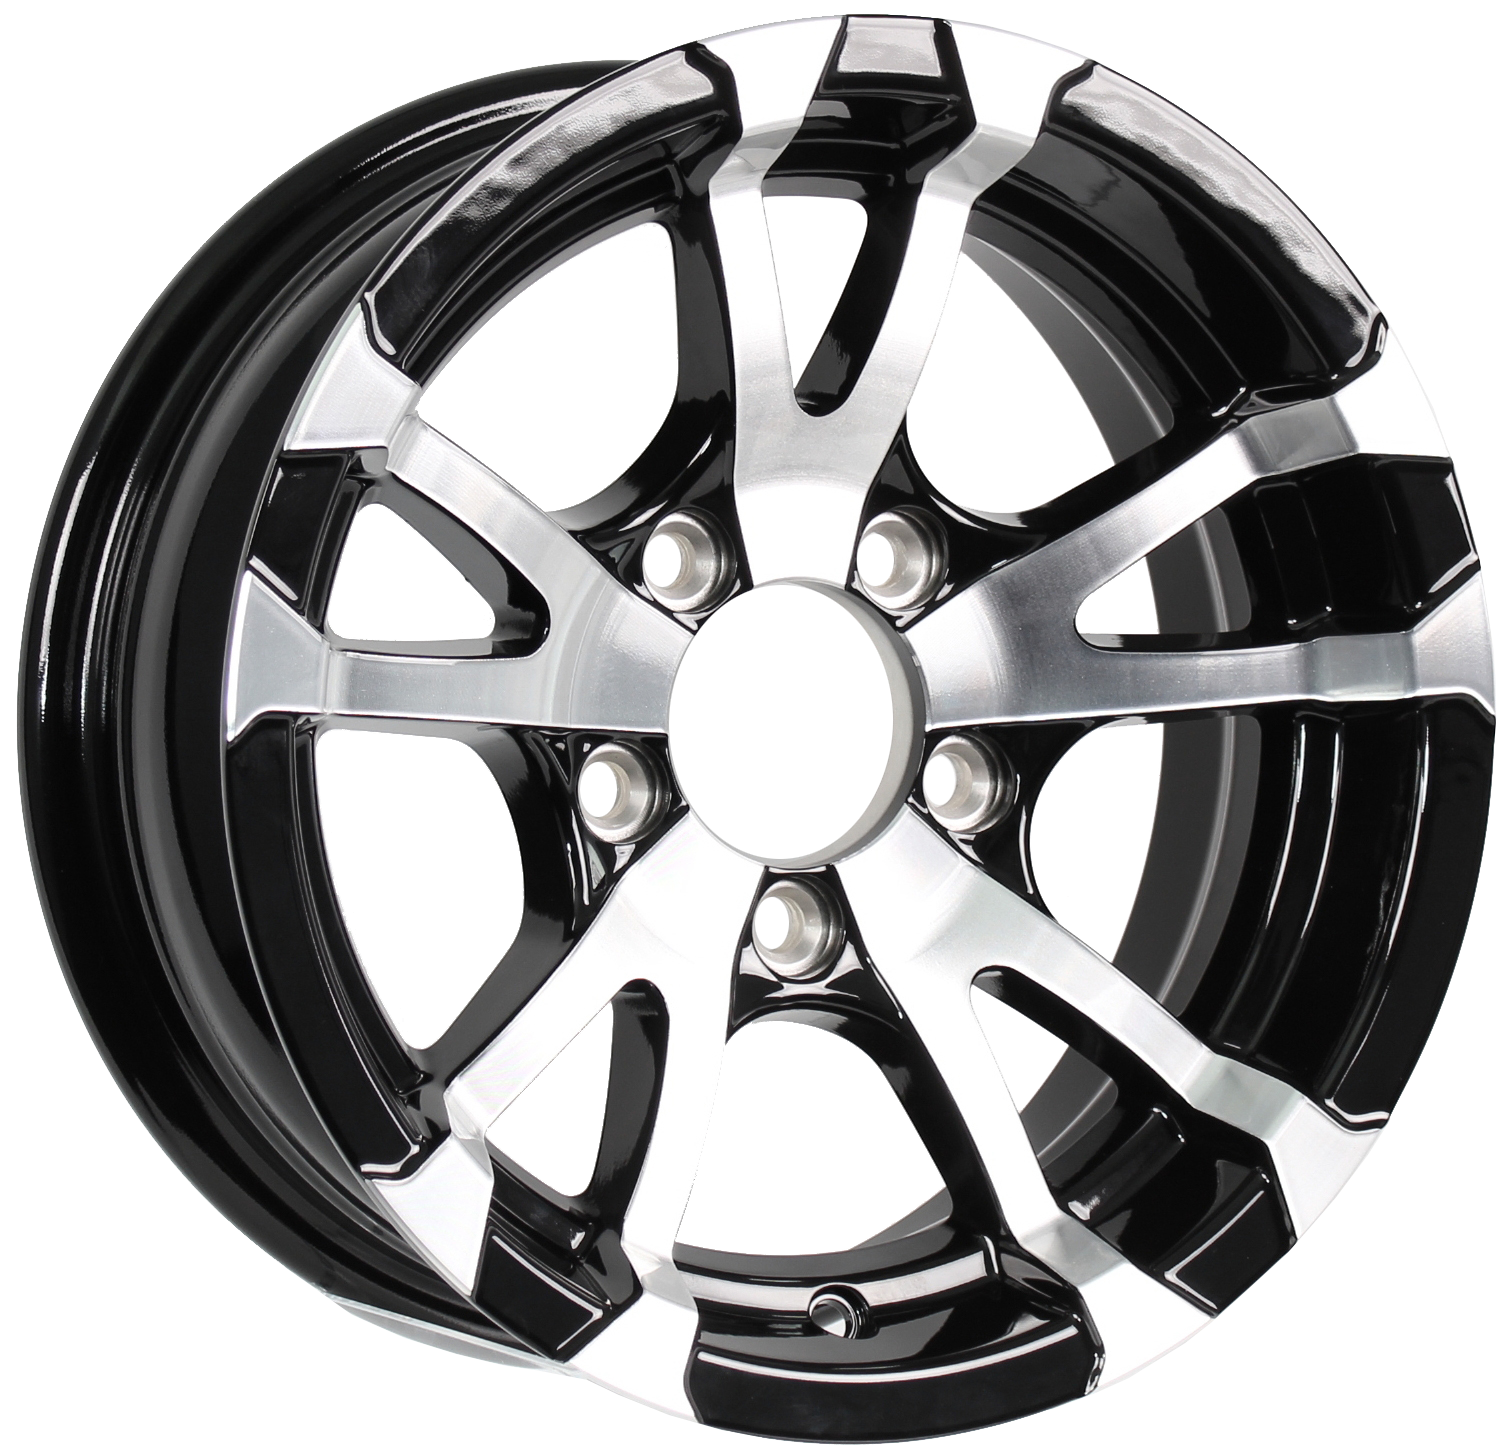 Avalanche 14x5.5 5-Lug Black Aluminum Trailer Wheel Image